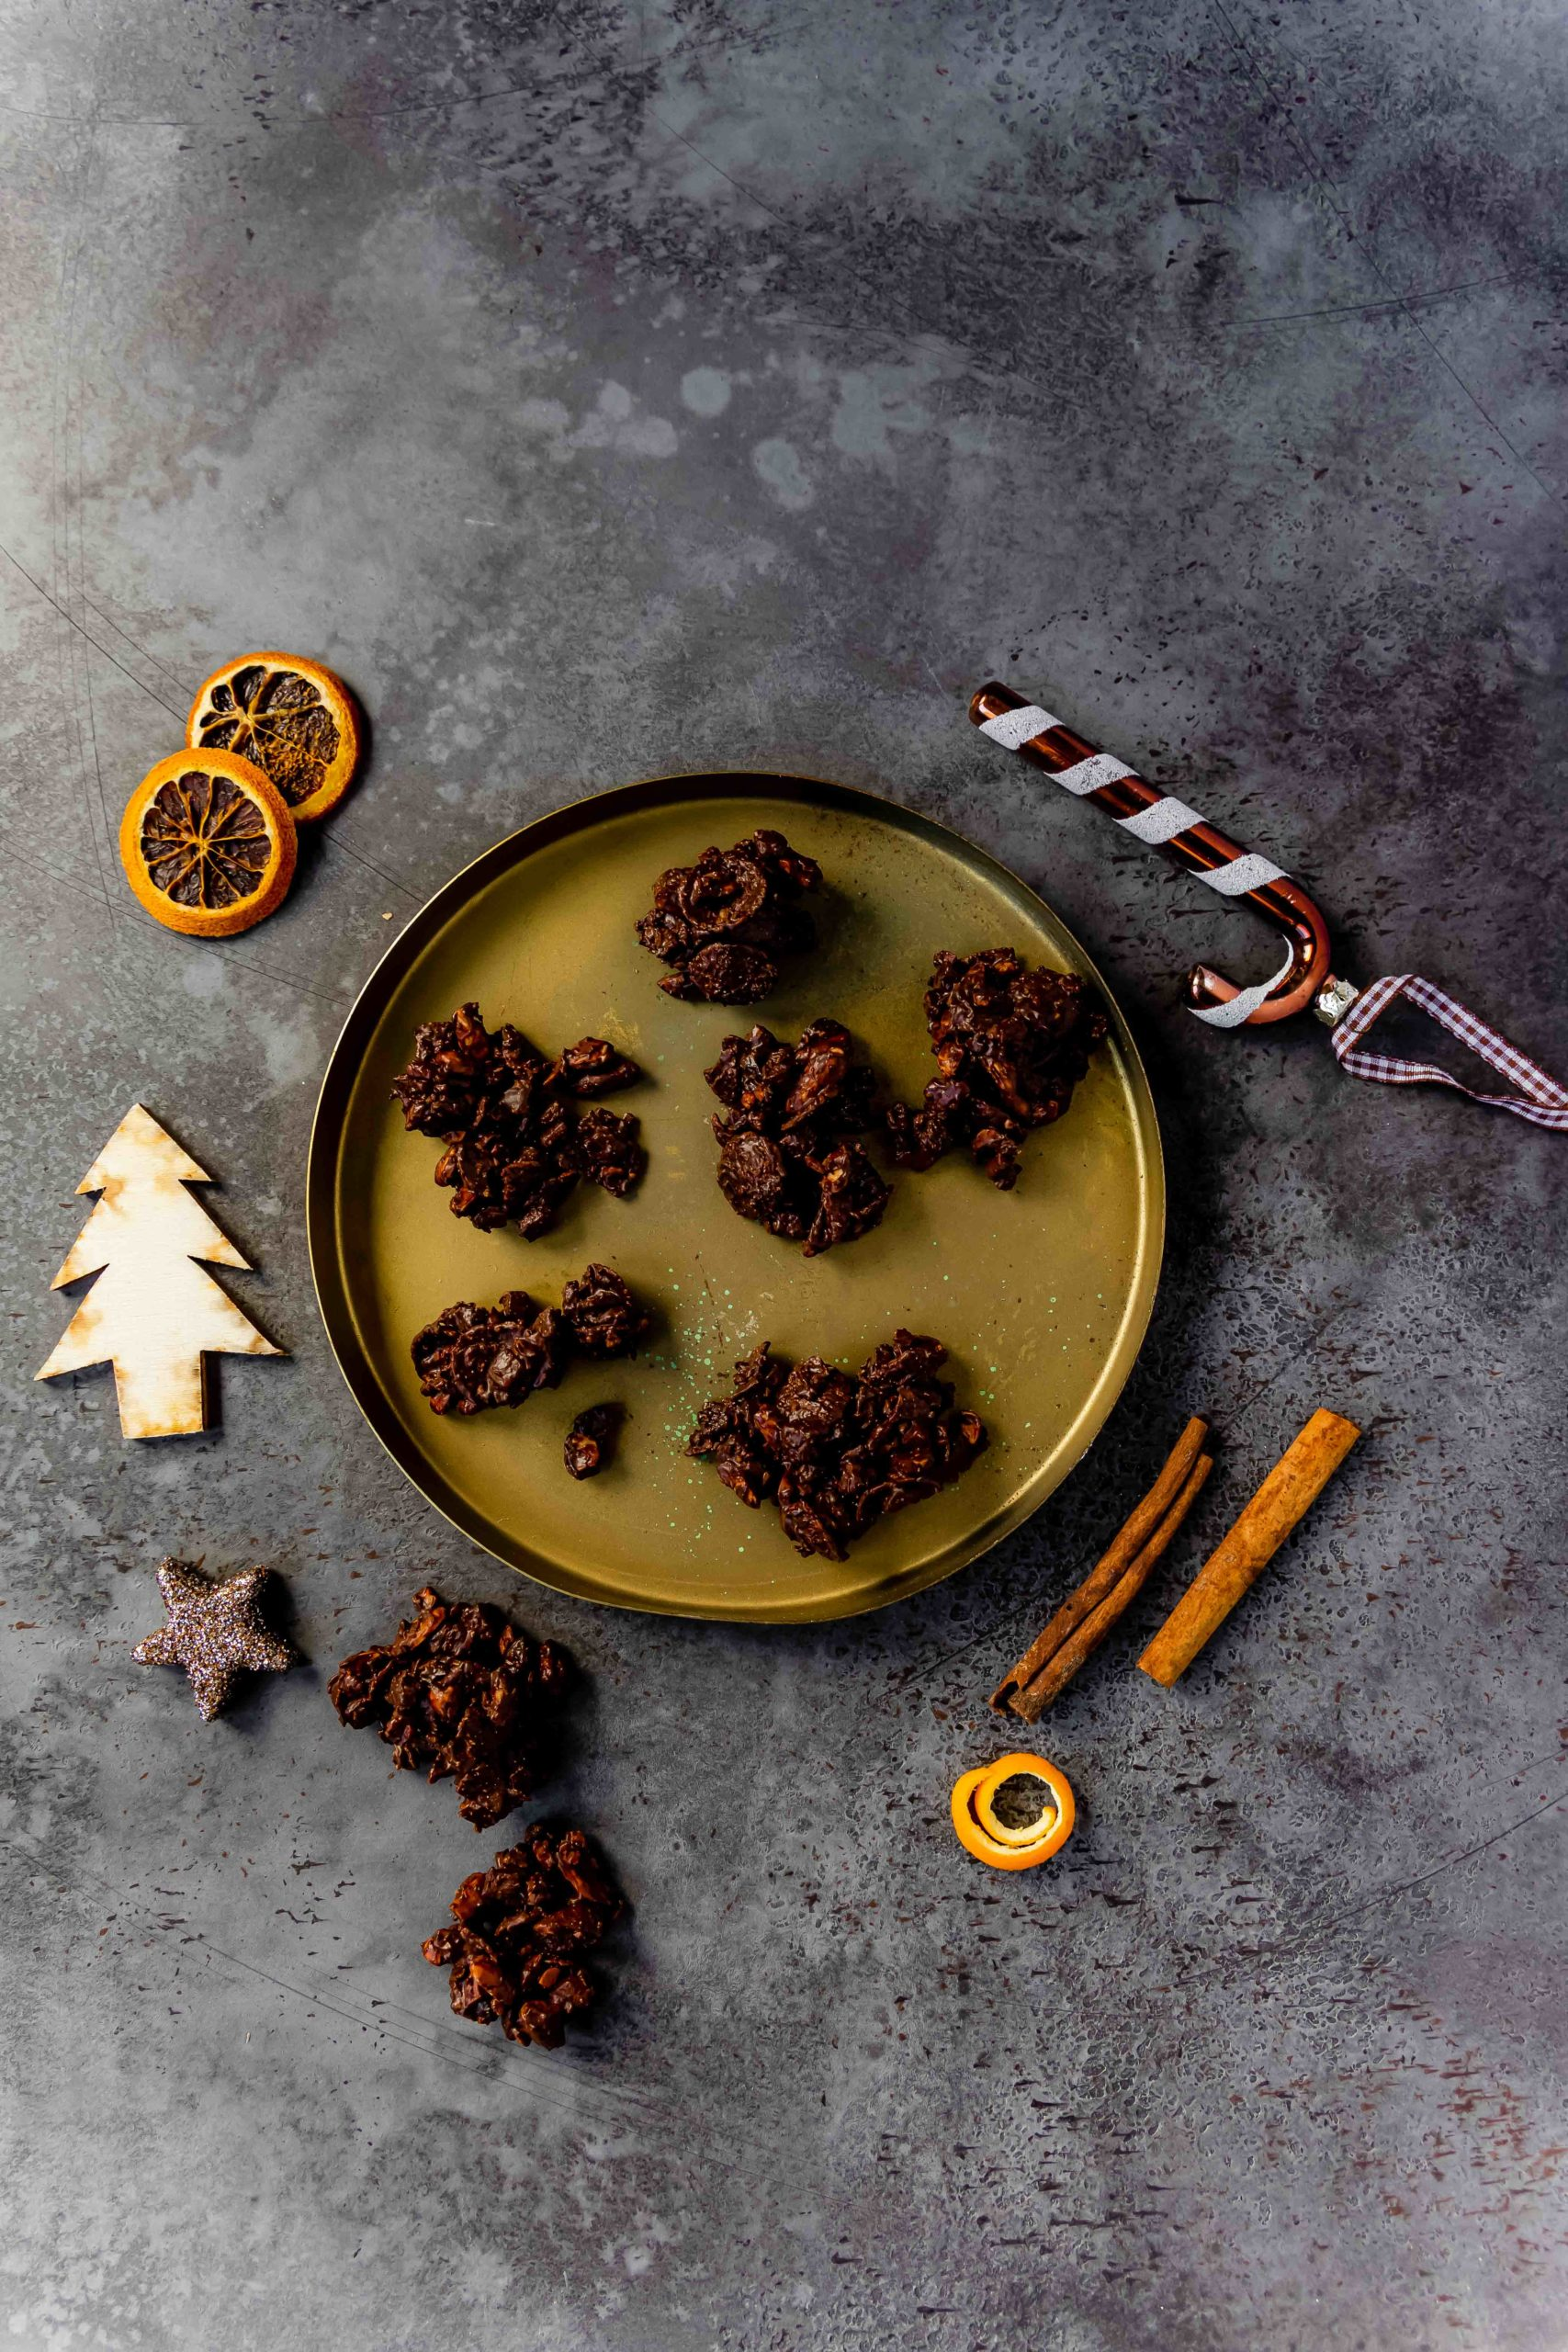 Schoko-Orangen-Crossies // chocolate crunch bites by https://babyrockmyday.com/schoko-orangen-crossies/